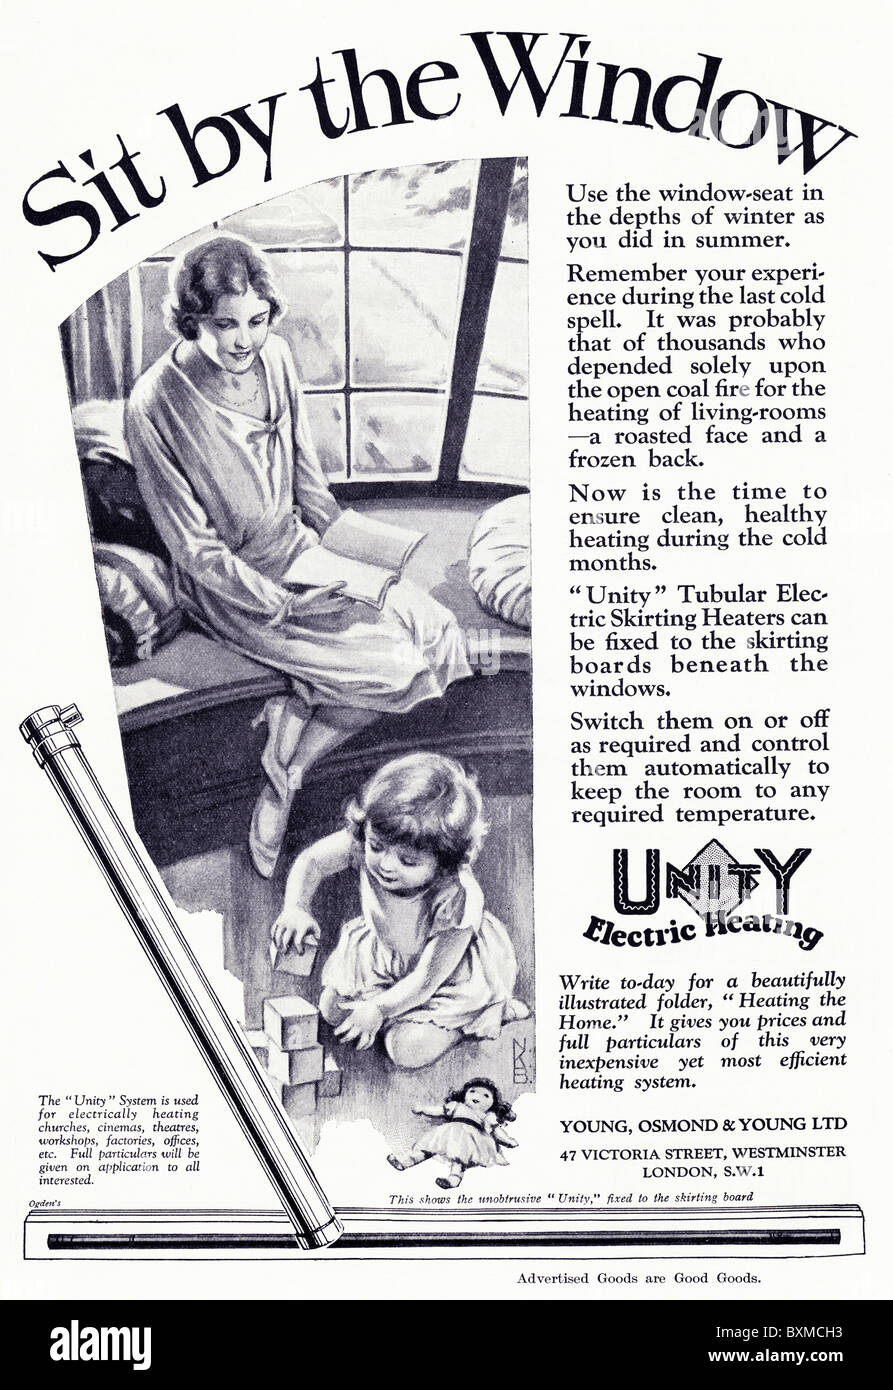 Full page advertisement for Unity tubular electric skirting heaters in women's magazine circa 1929 - Stock Image